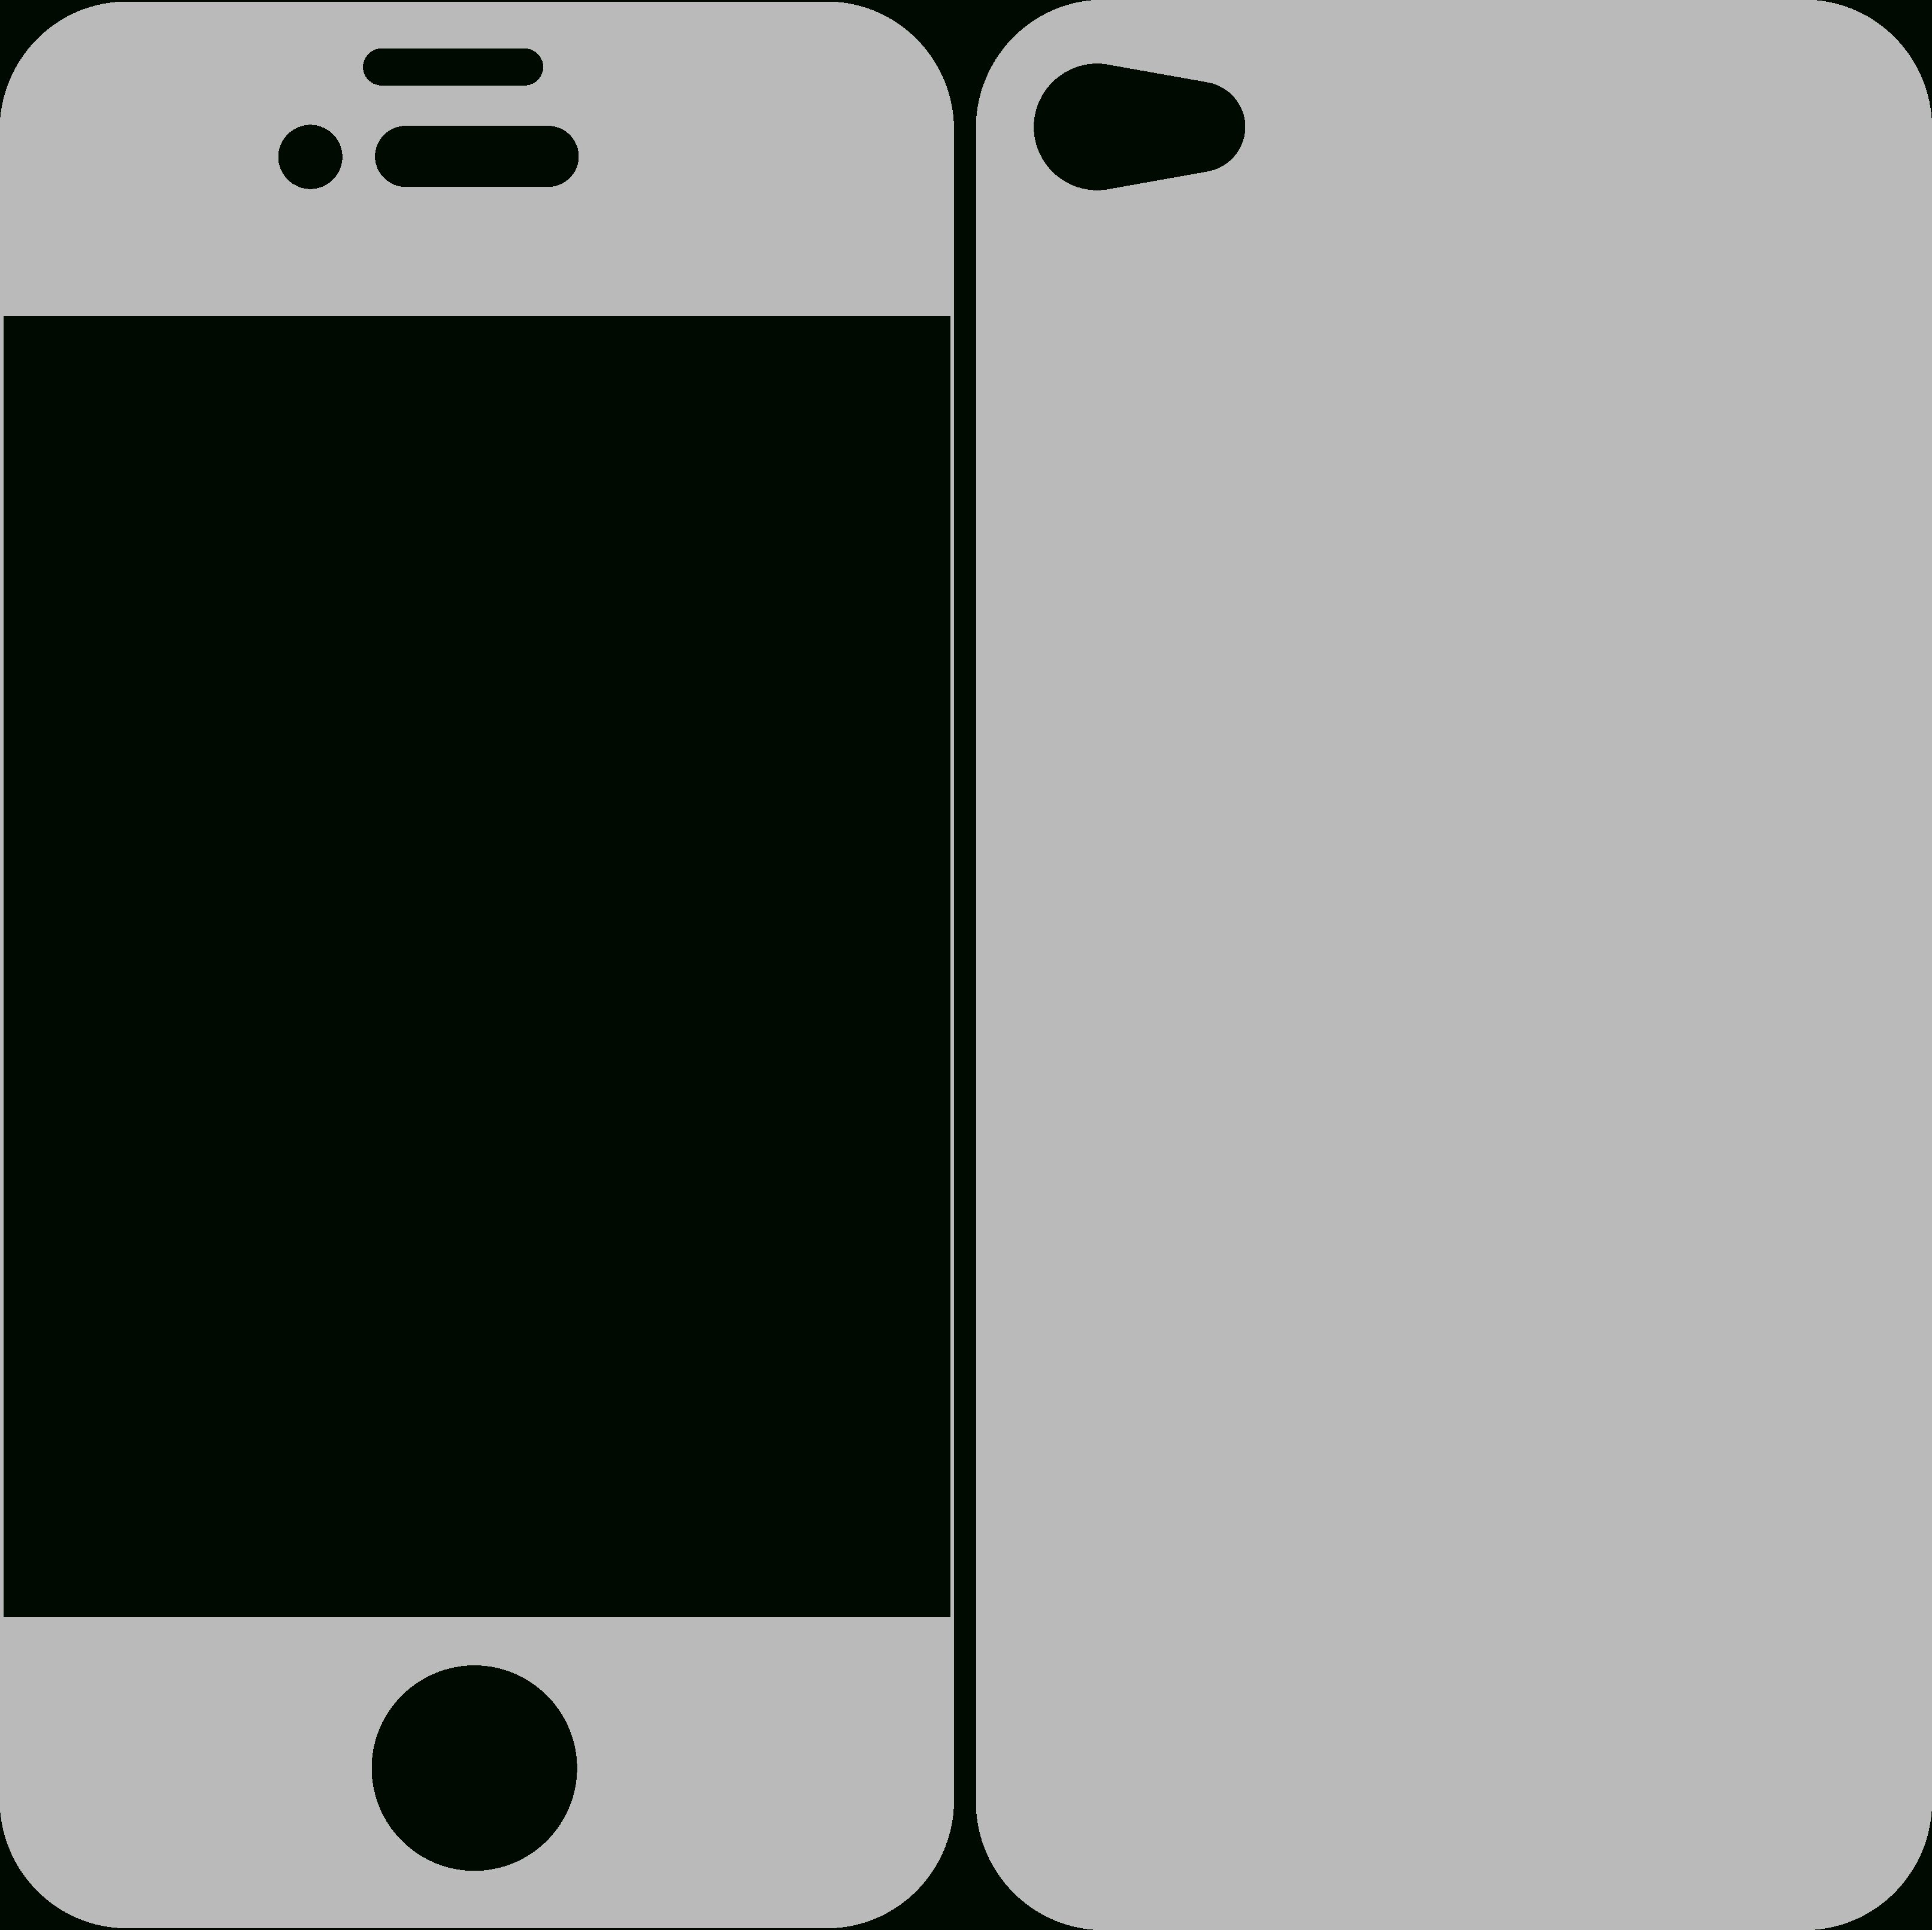 Free Iphone 6 Skin Template - Free Printable Iphone Skins | Free - Free Printable Iphone Skins